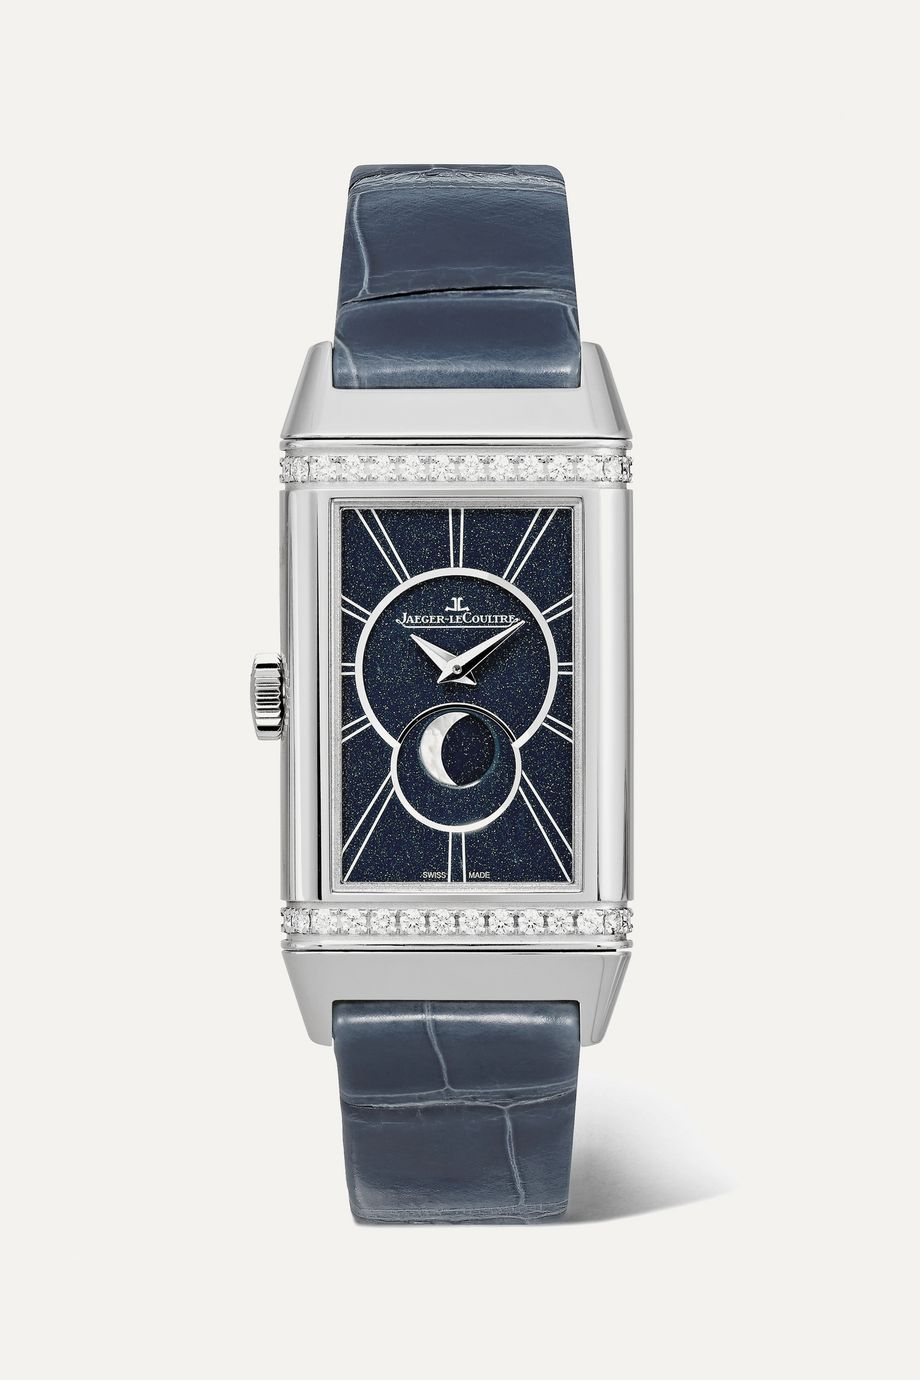 Jaeger-LeCoultre Reverso One Duetto Moon 20mm stainless steel, alligator and diamond watch